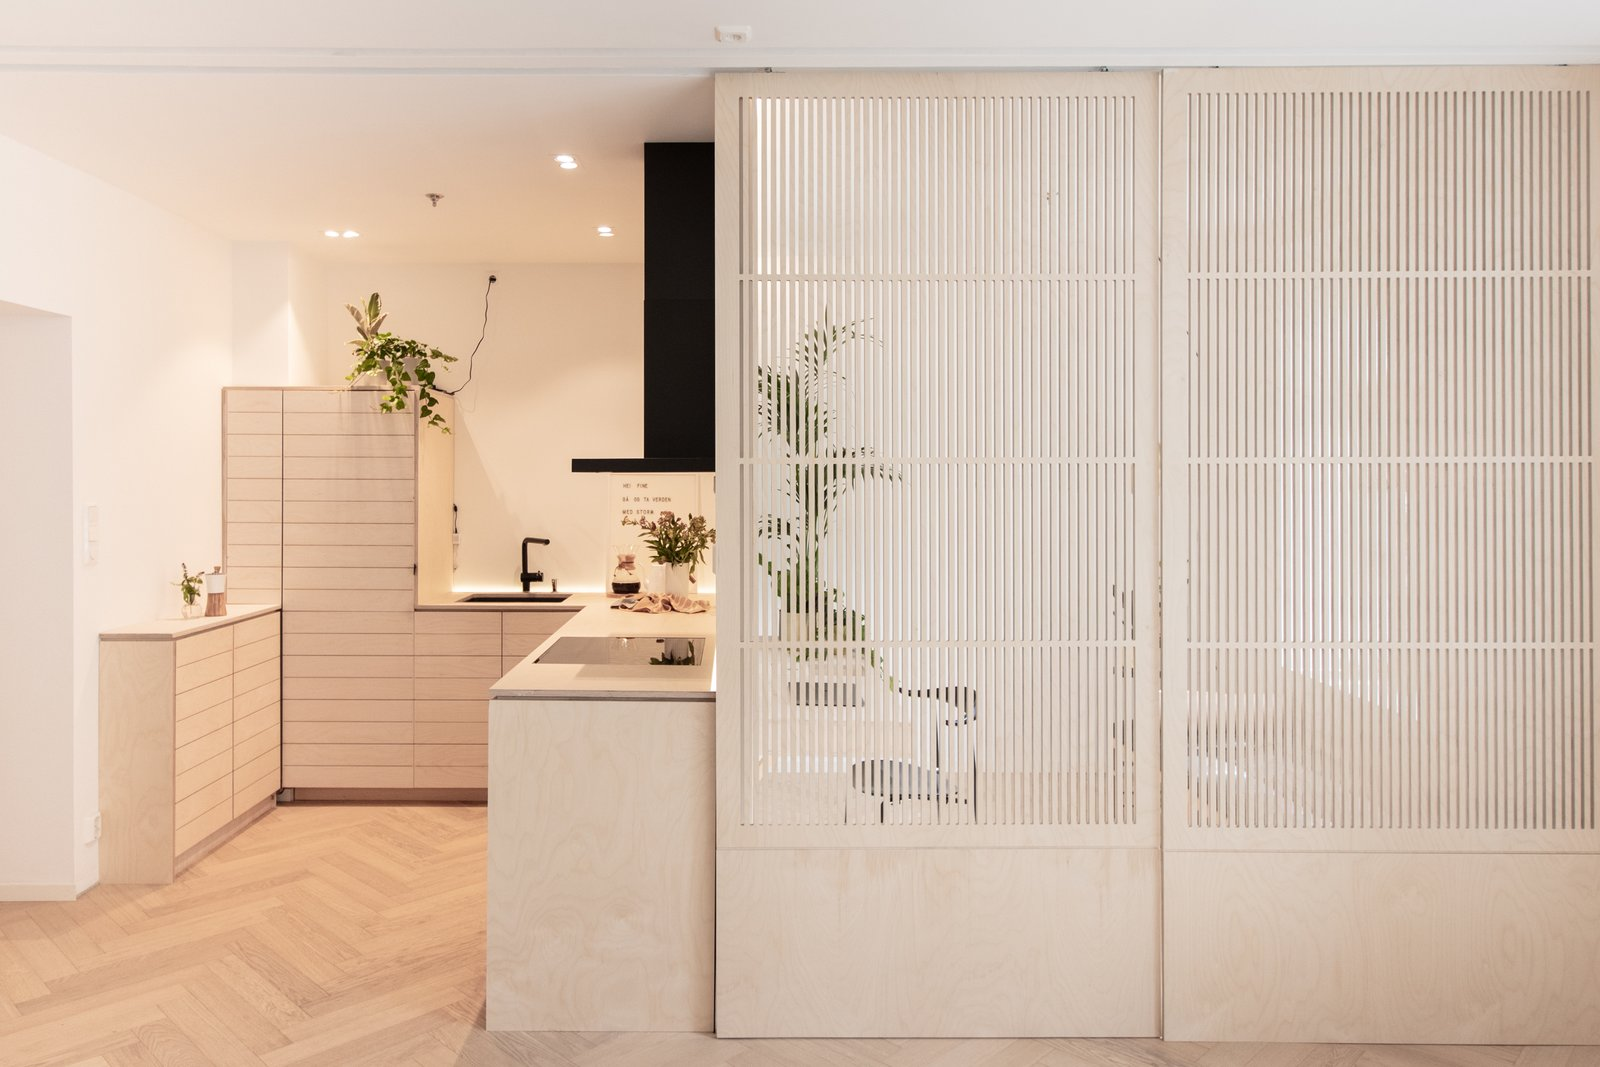 Kitchen, Undermount Sink, Wood Counter, Dishwasher, Ceiling Lighting, Medium Hardwood Floor, Refrigerator, and Wood Cabinet Closed bedroom for full privacy. Sound and light proof curtains can be available inside.  Scandinavian/Japanese concept home in Oslo city center